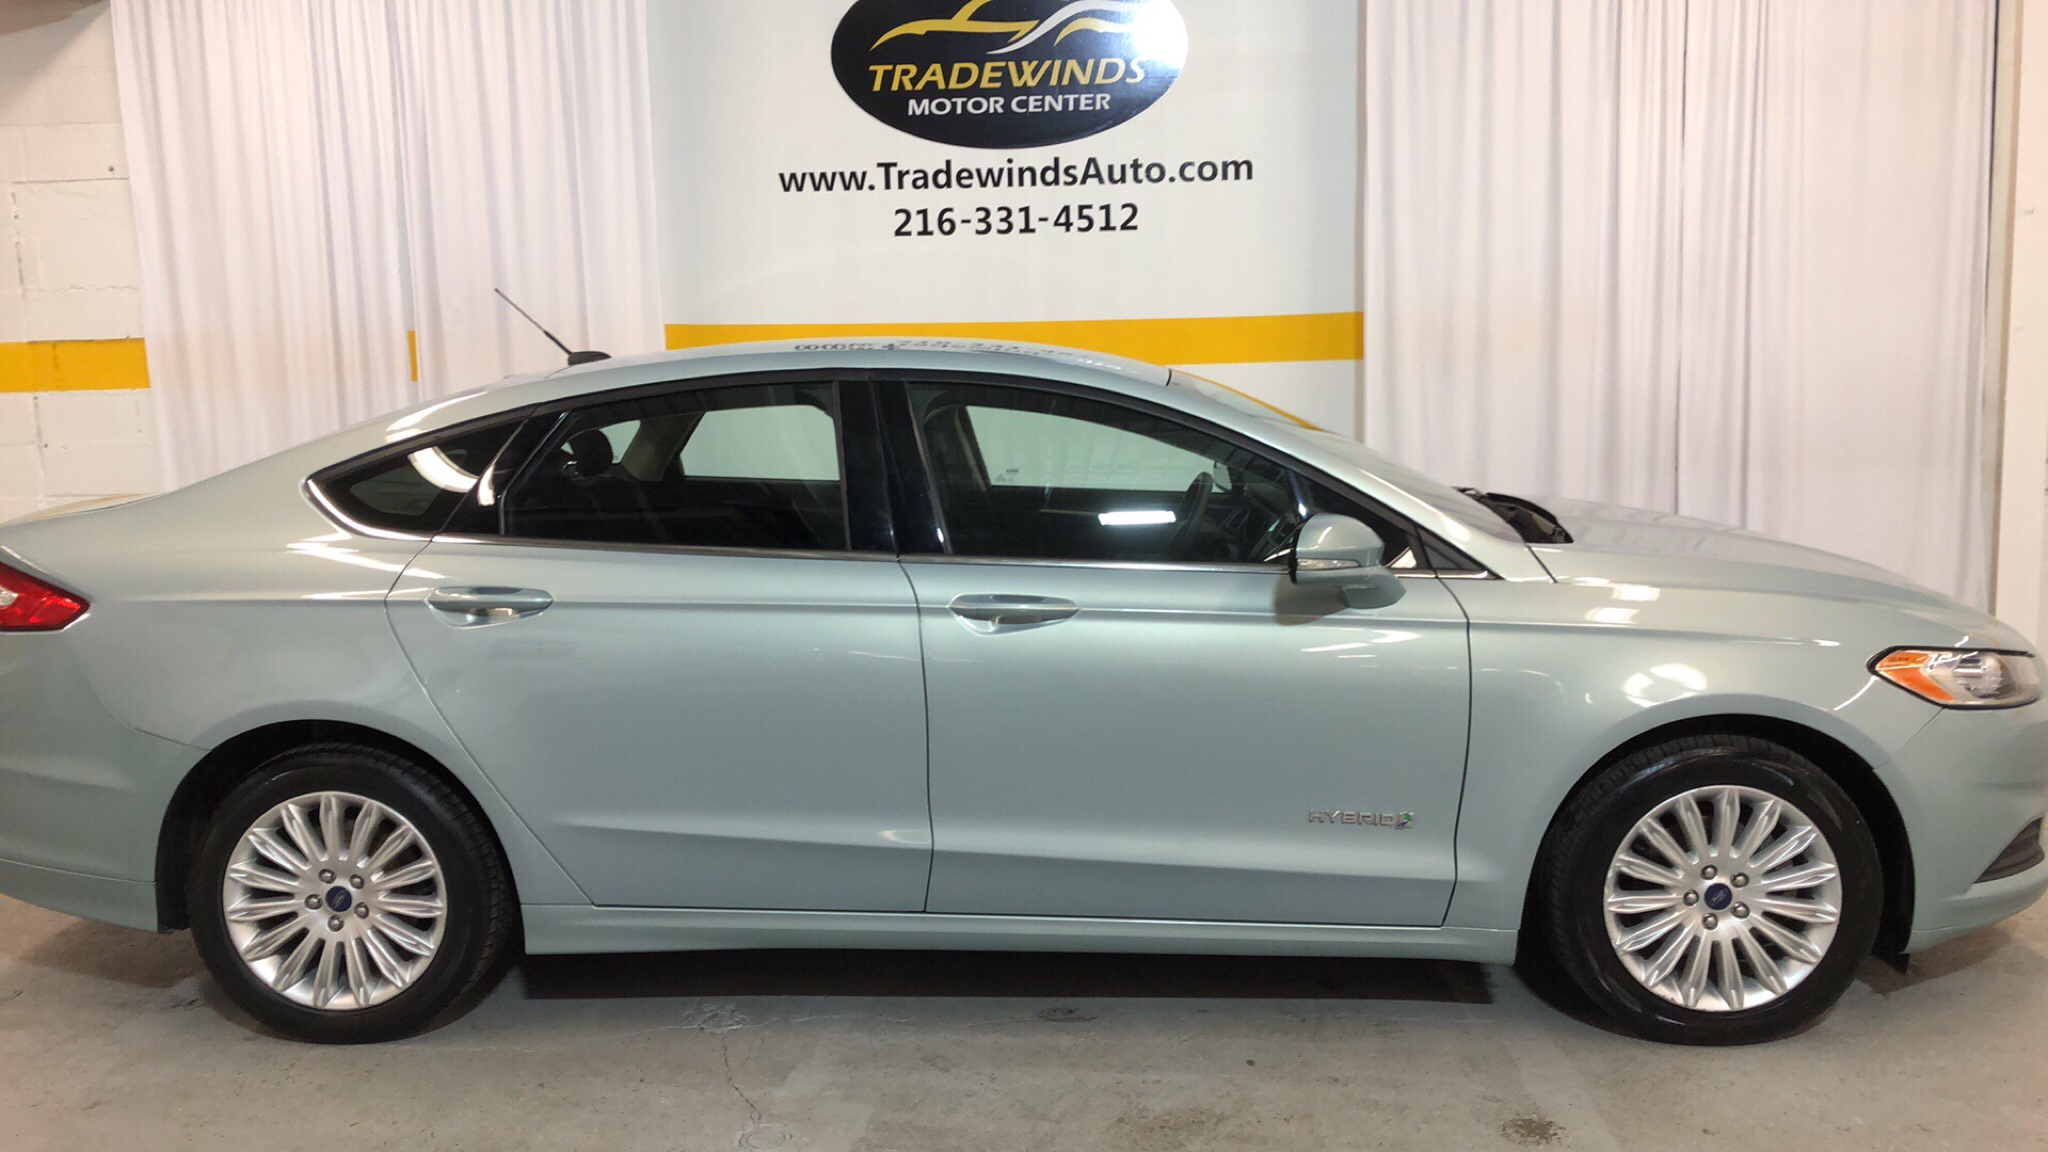 2013 FORD FUSION SE HYBRID for sale at Tradewinds Motor Center